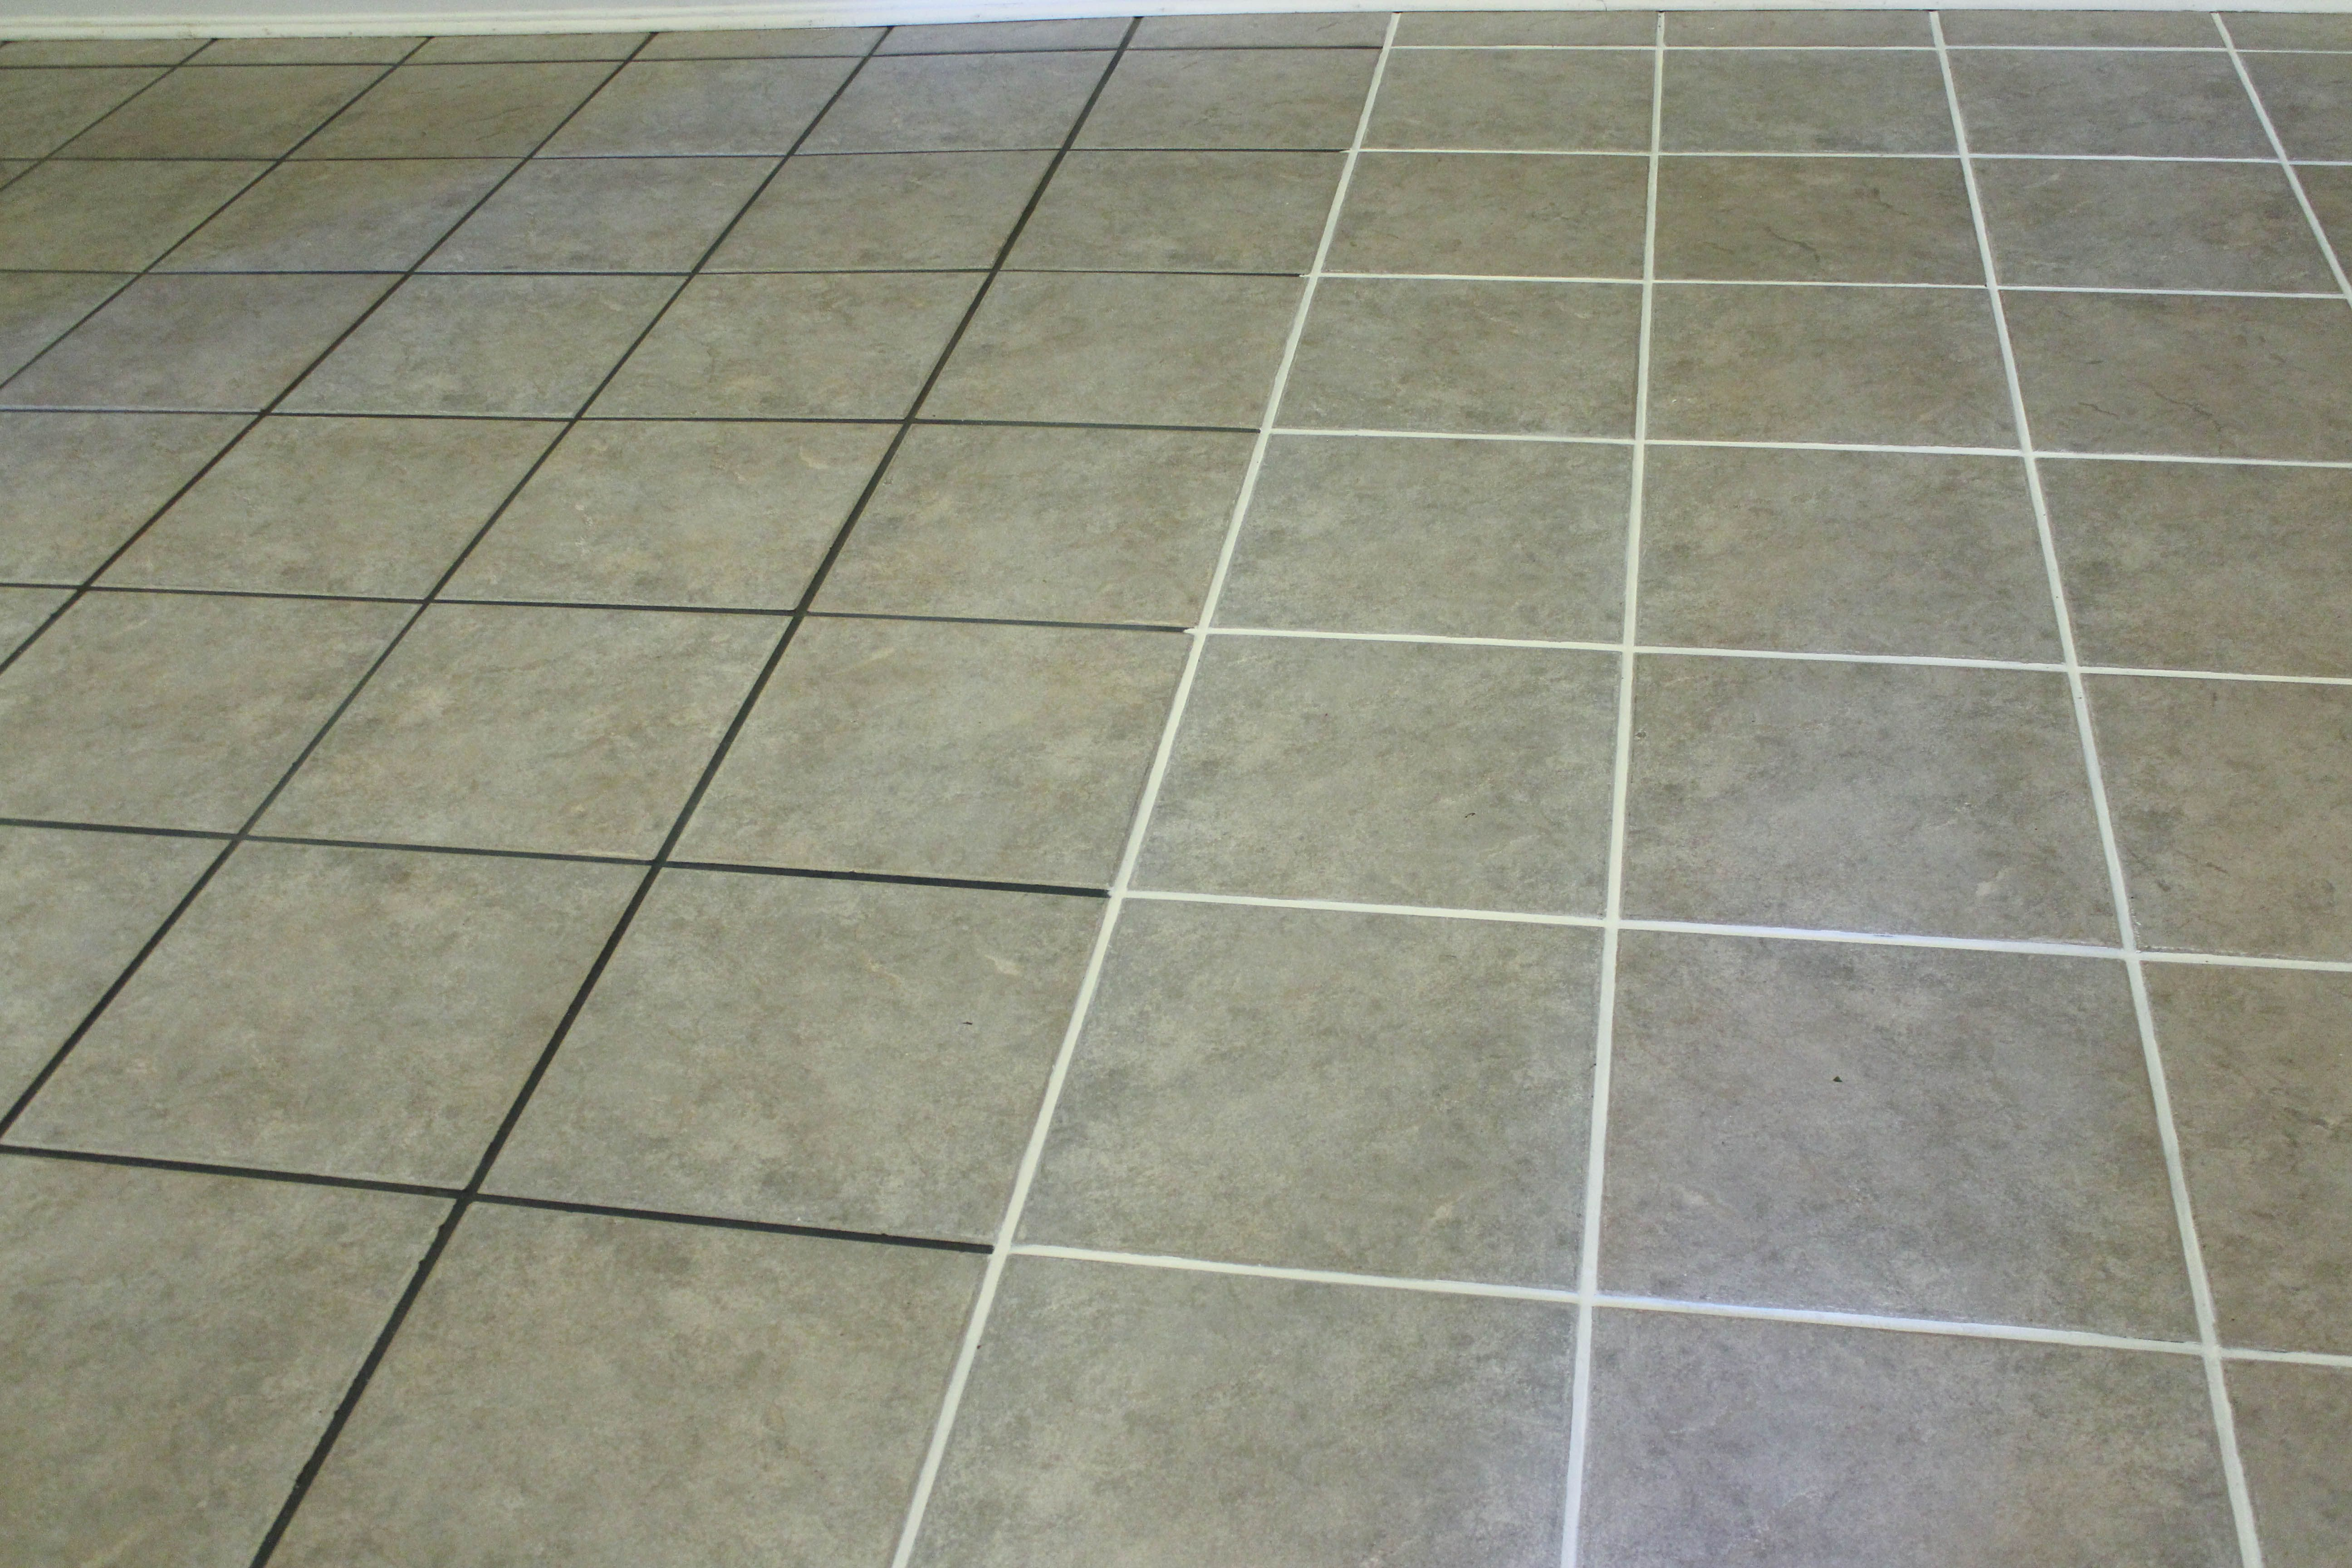 How To Restore A Stone Tile Floor Kristen Ione Stone Tile Flooring Tile Floor Stone Tiles